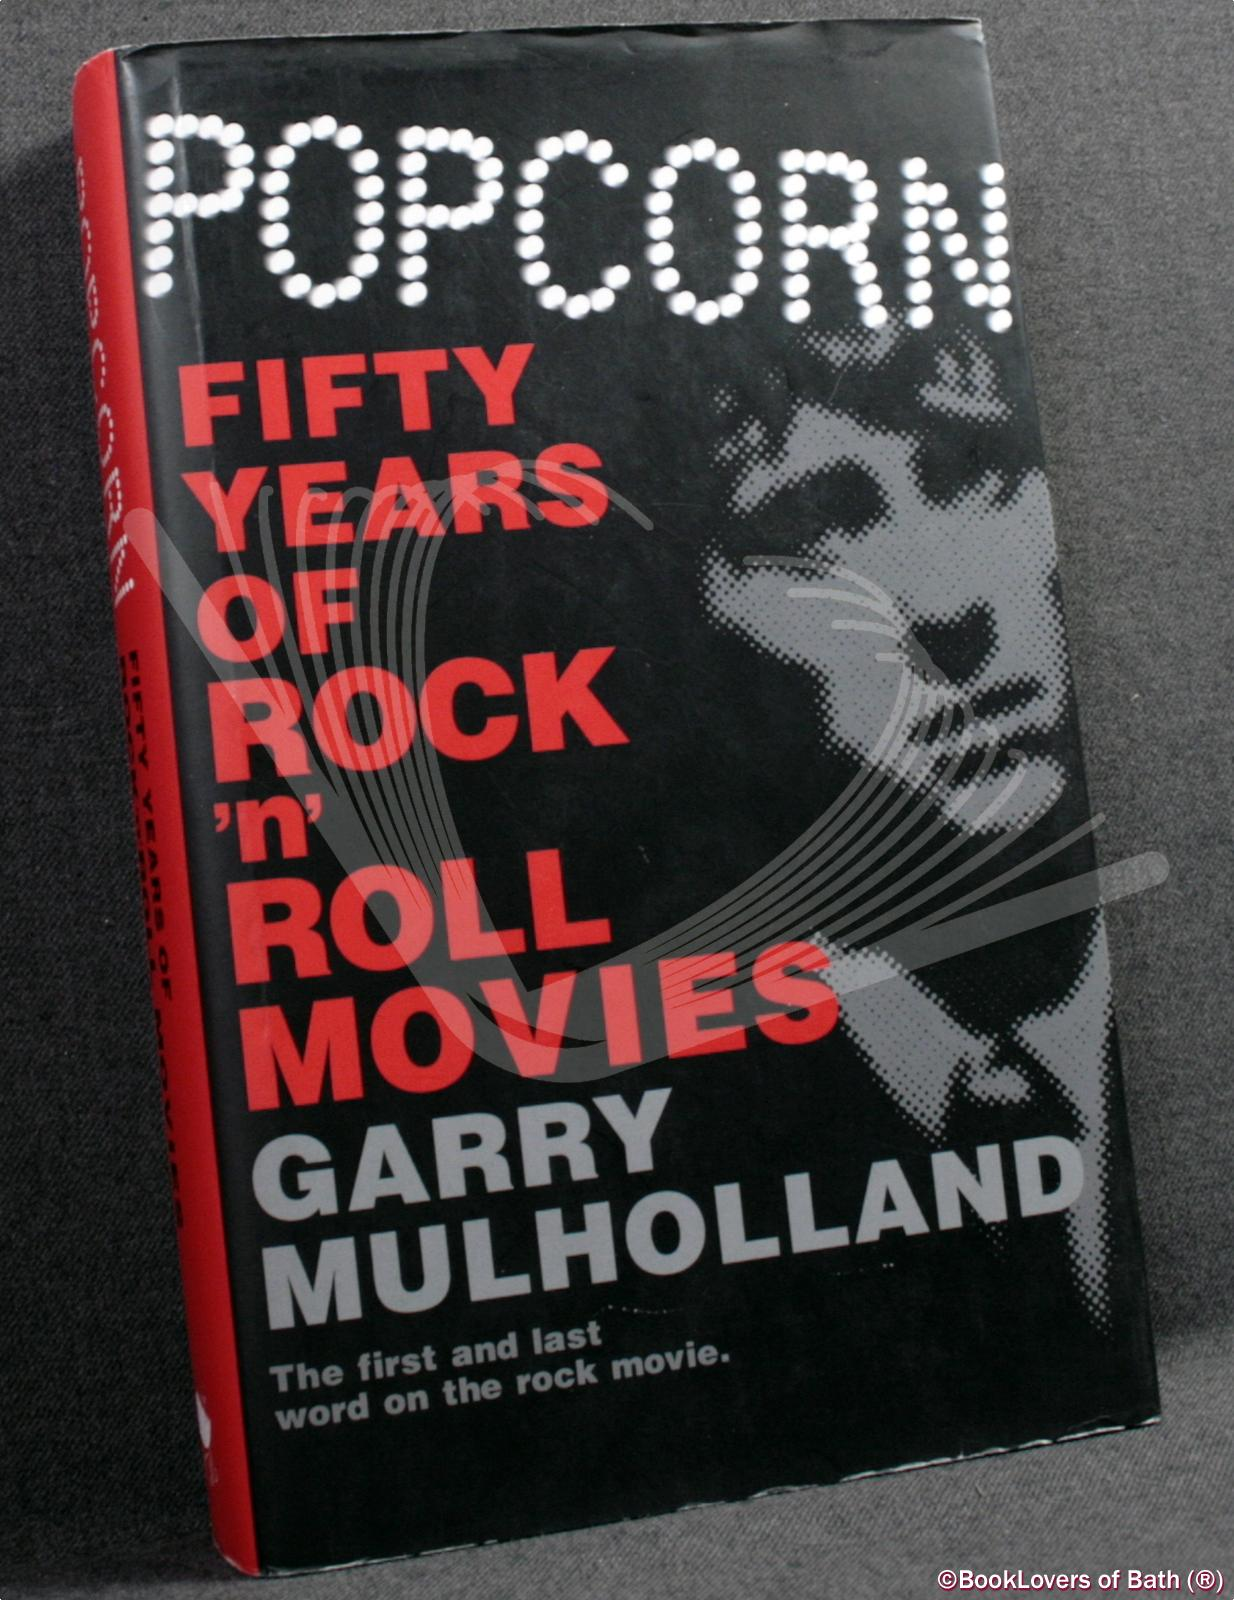 Popcorn: Fifty Years of Rock 'n' Roll Movies - Garry Mulholland